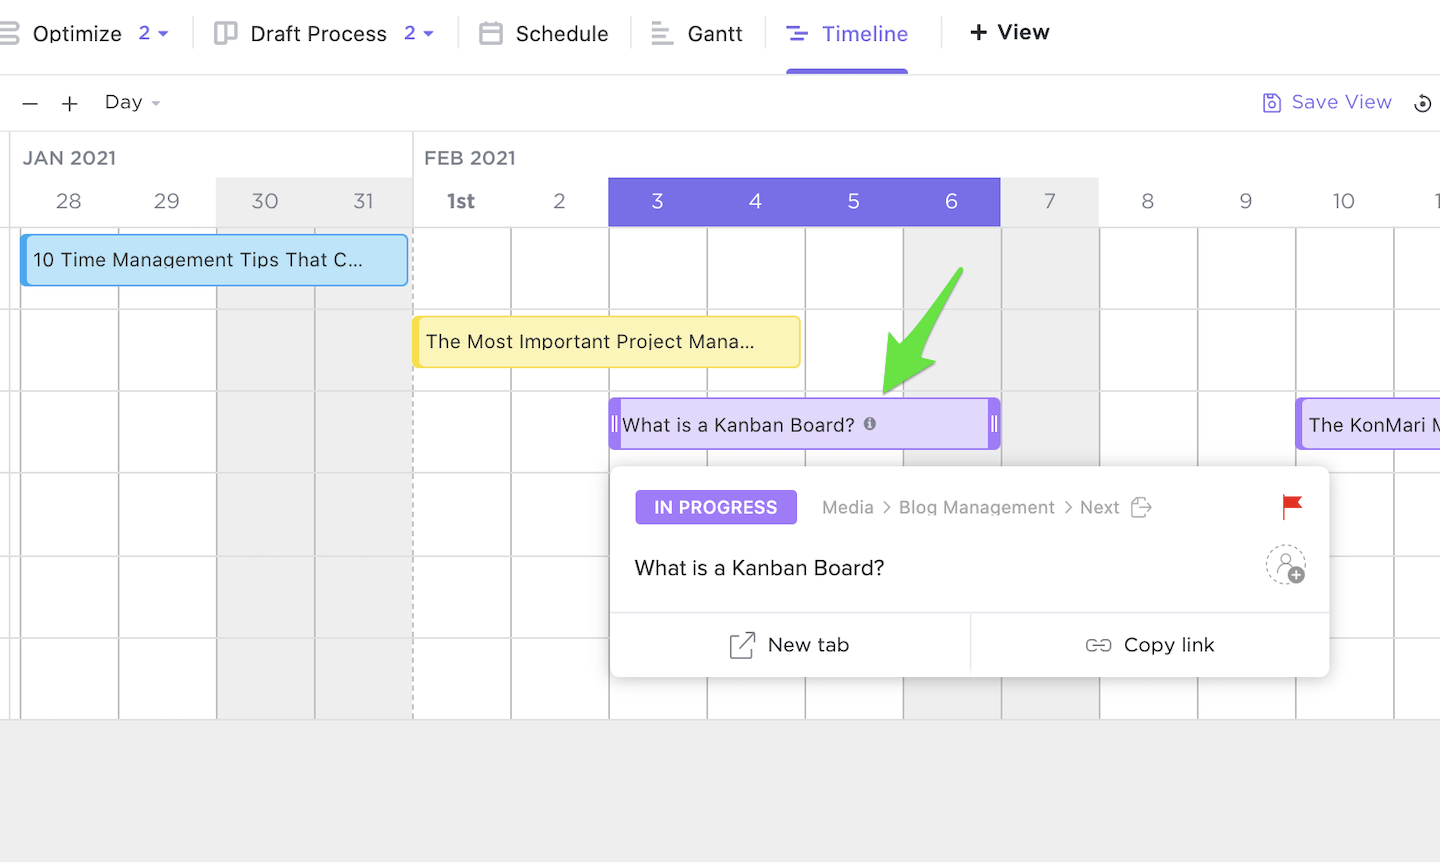 Screenshot of additional information displayed by hovering over the i in a task in Timeline view